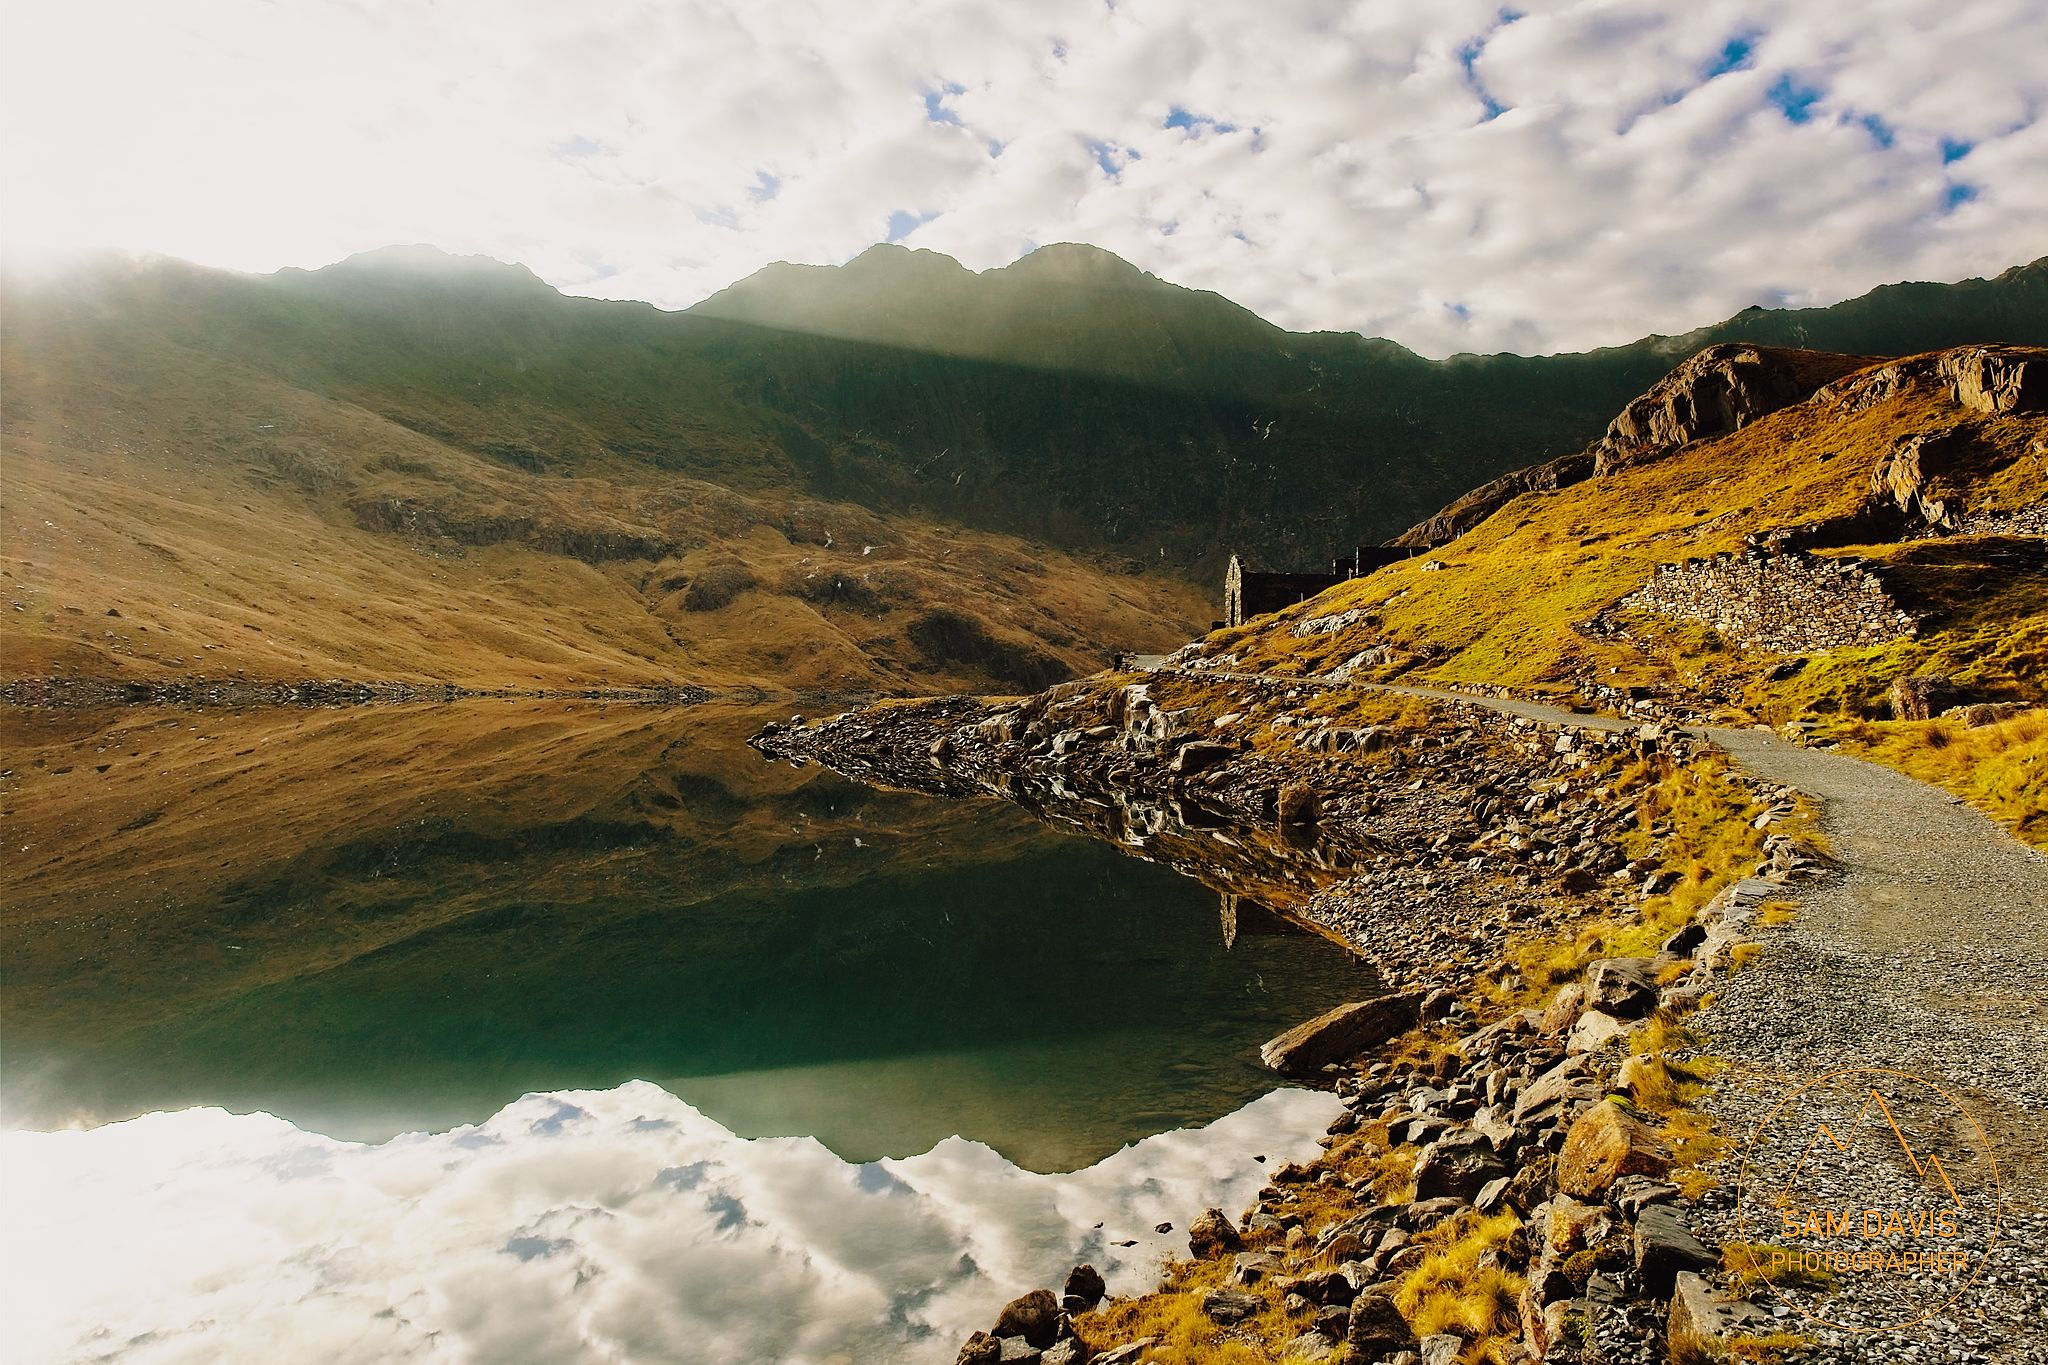 Miners track reflections, Snowdonia, Wales by Sam Davis Landscape Photographer